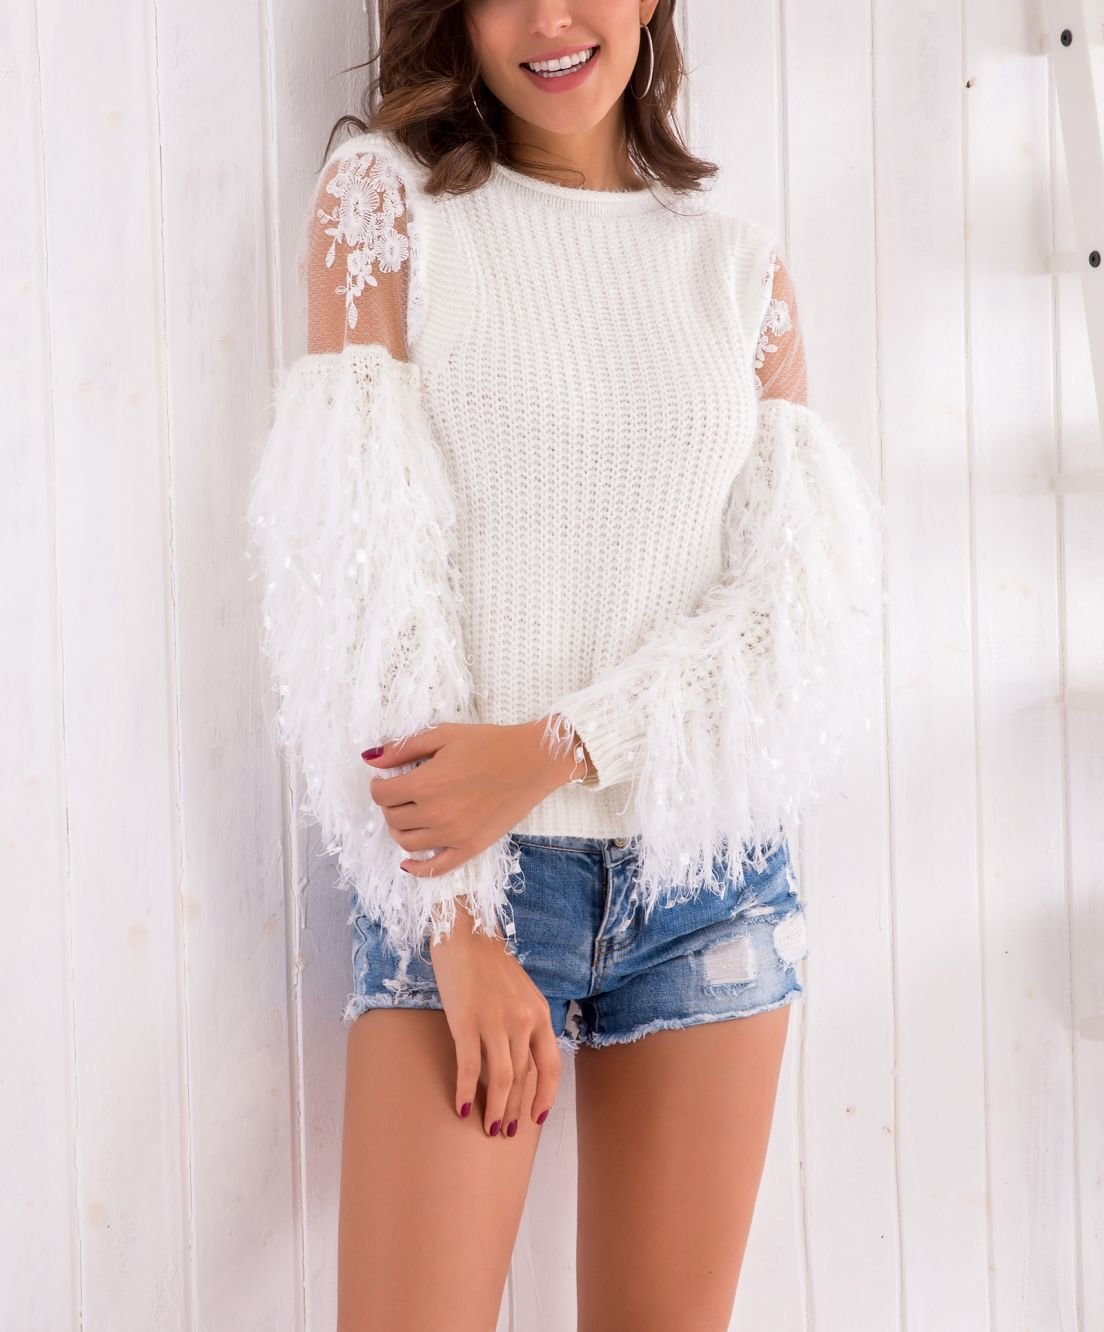 Sweater Top with Lace Sleeve Details